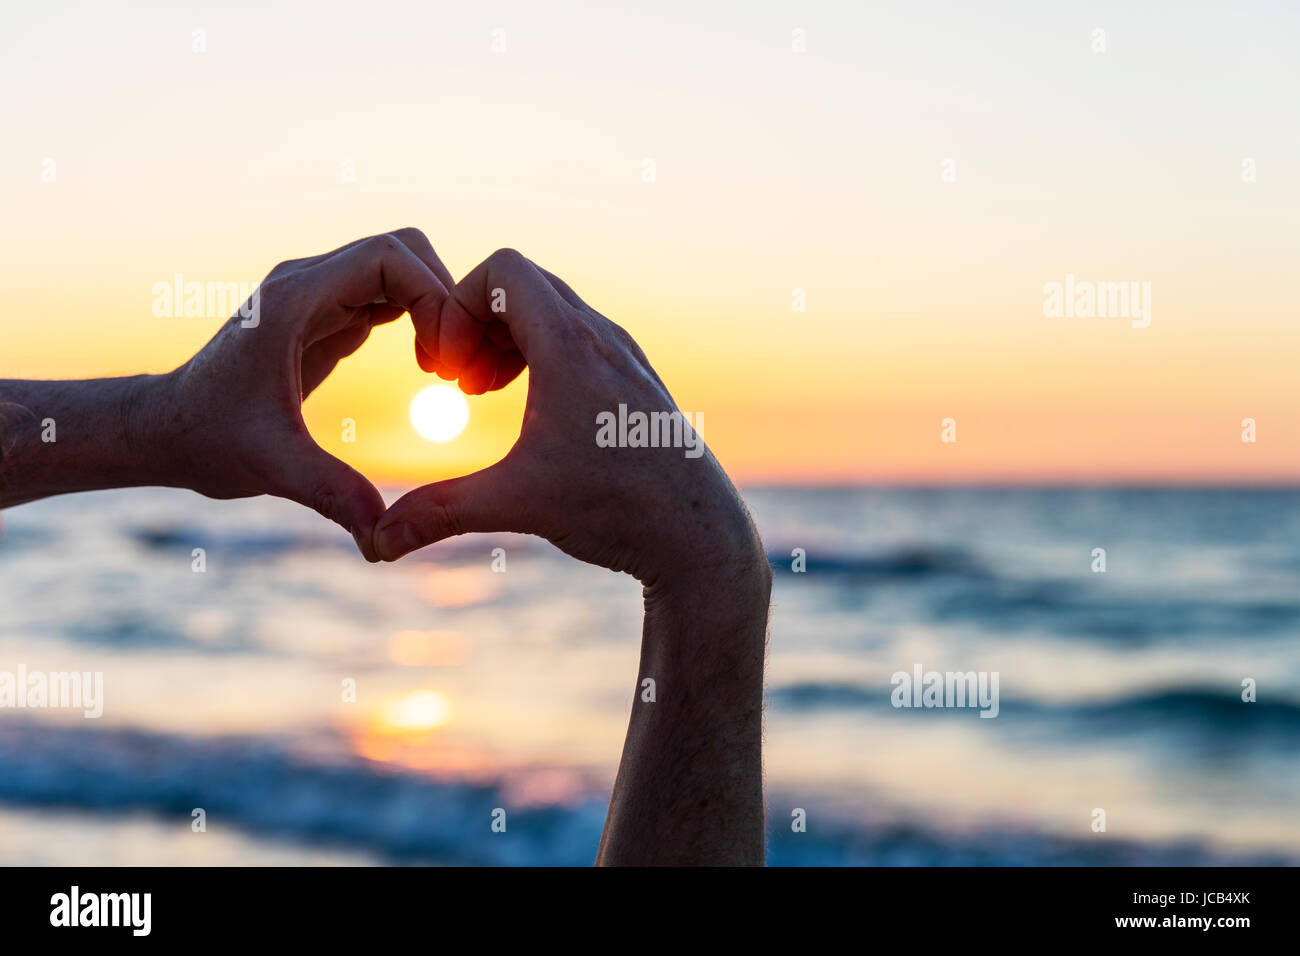 Hands making a heart shape in front of the sun - Stock Image